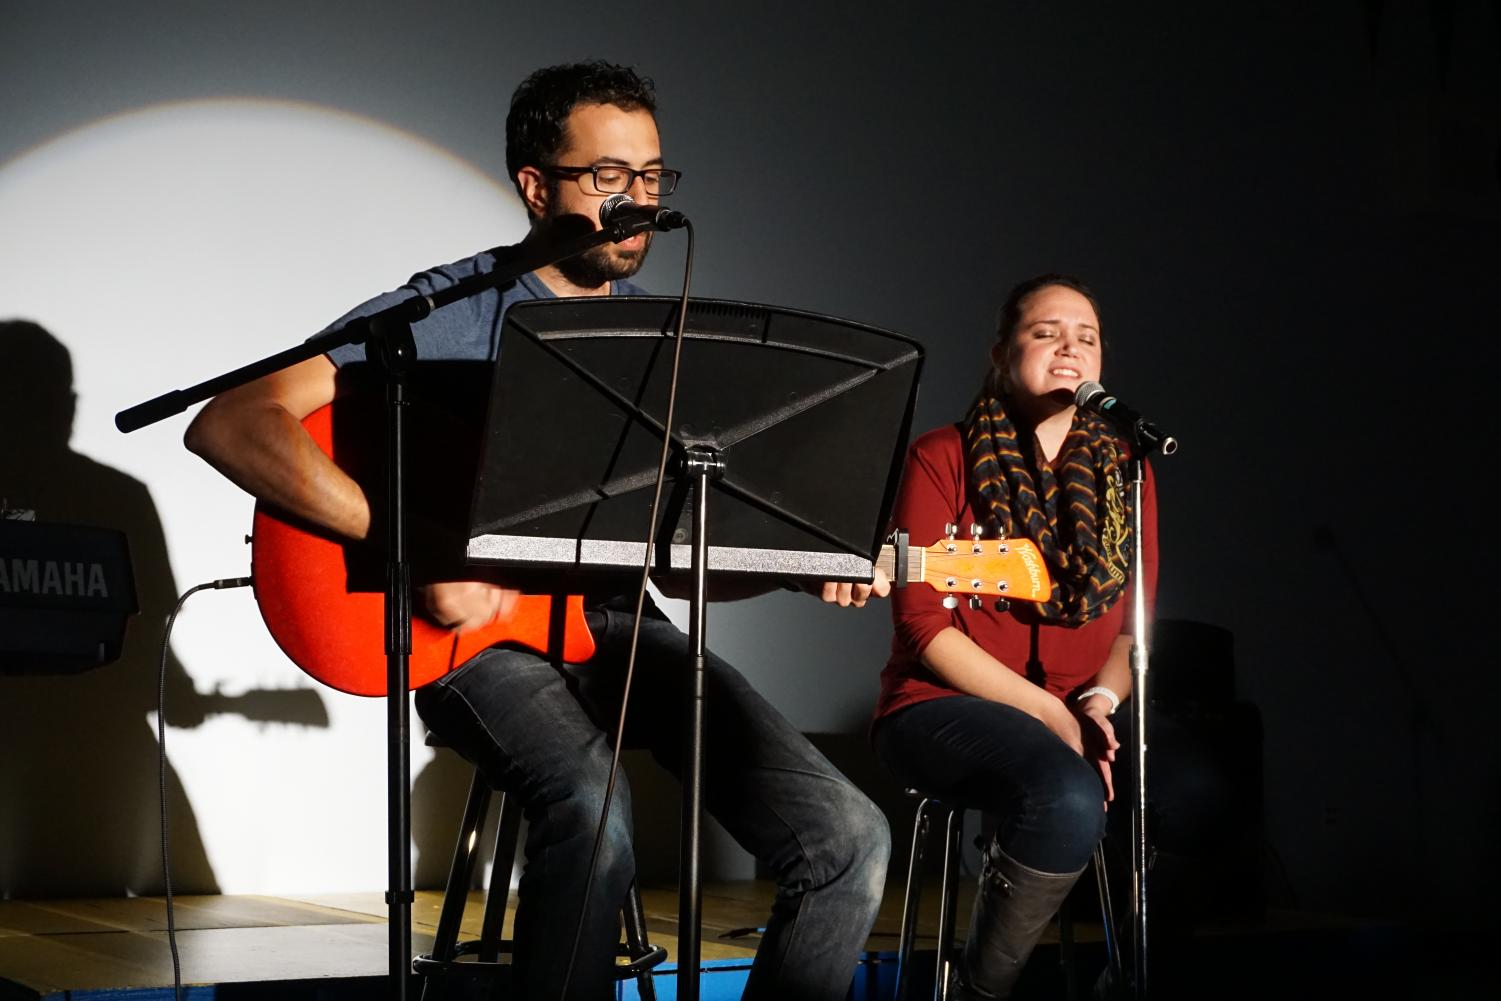 Mary Haddad and her husband perform.